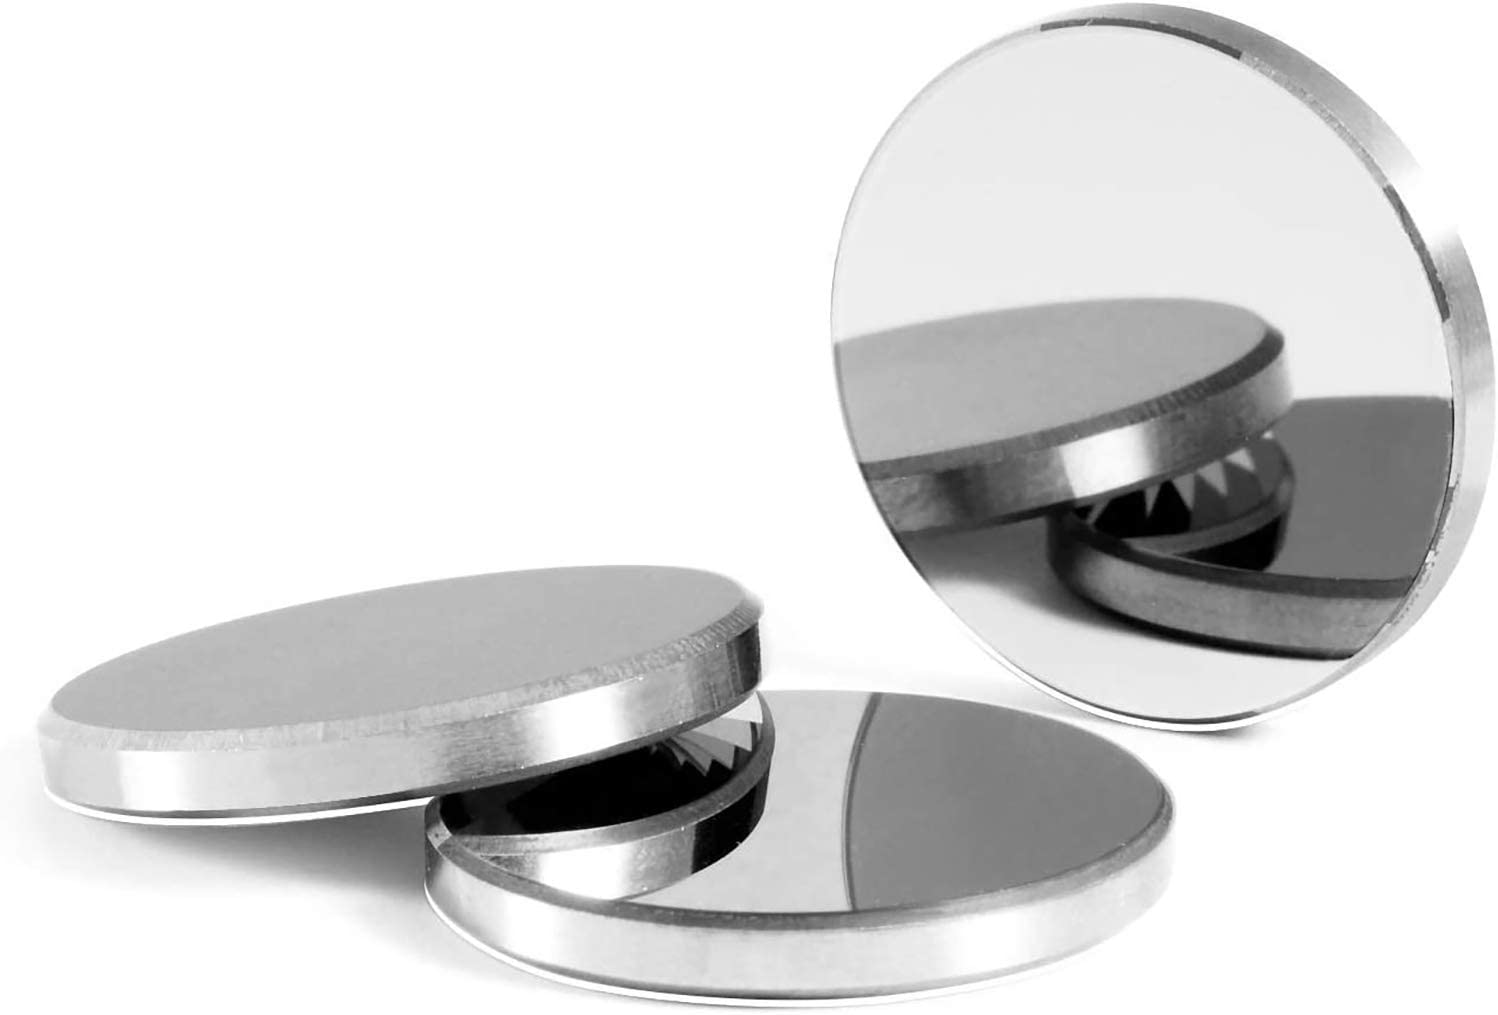 Mssoomm 50.8mm Molybdenum (Mo) Laser Reflection Mirrors for CO2 Laser Cutter Engraver Machine, 3 Pcs Dia. 50.8mm /2 THK 5mm